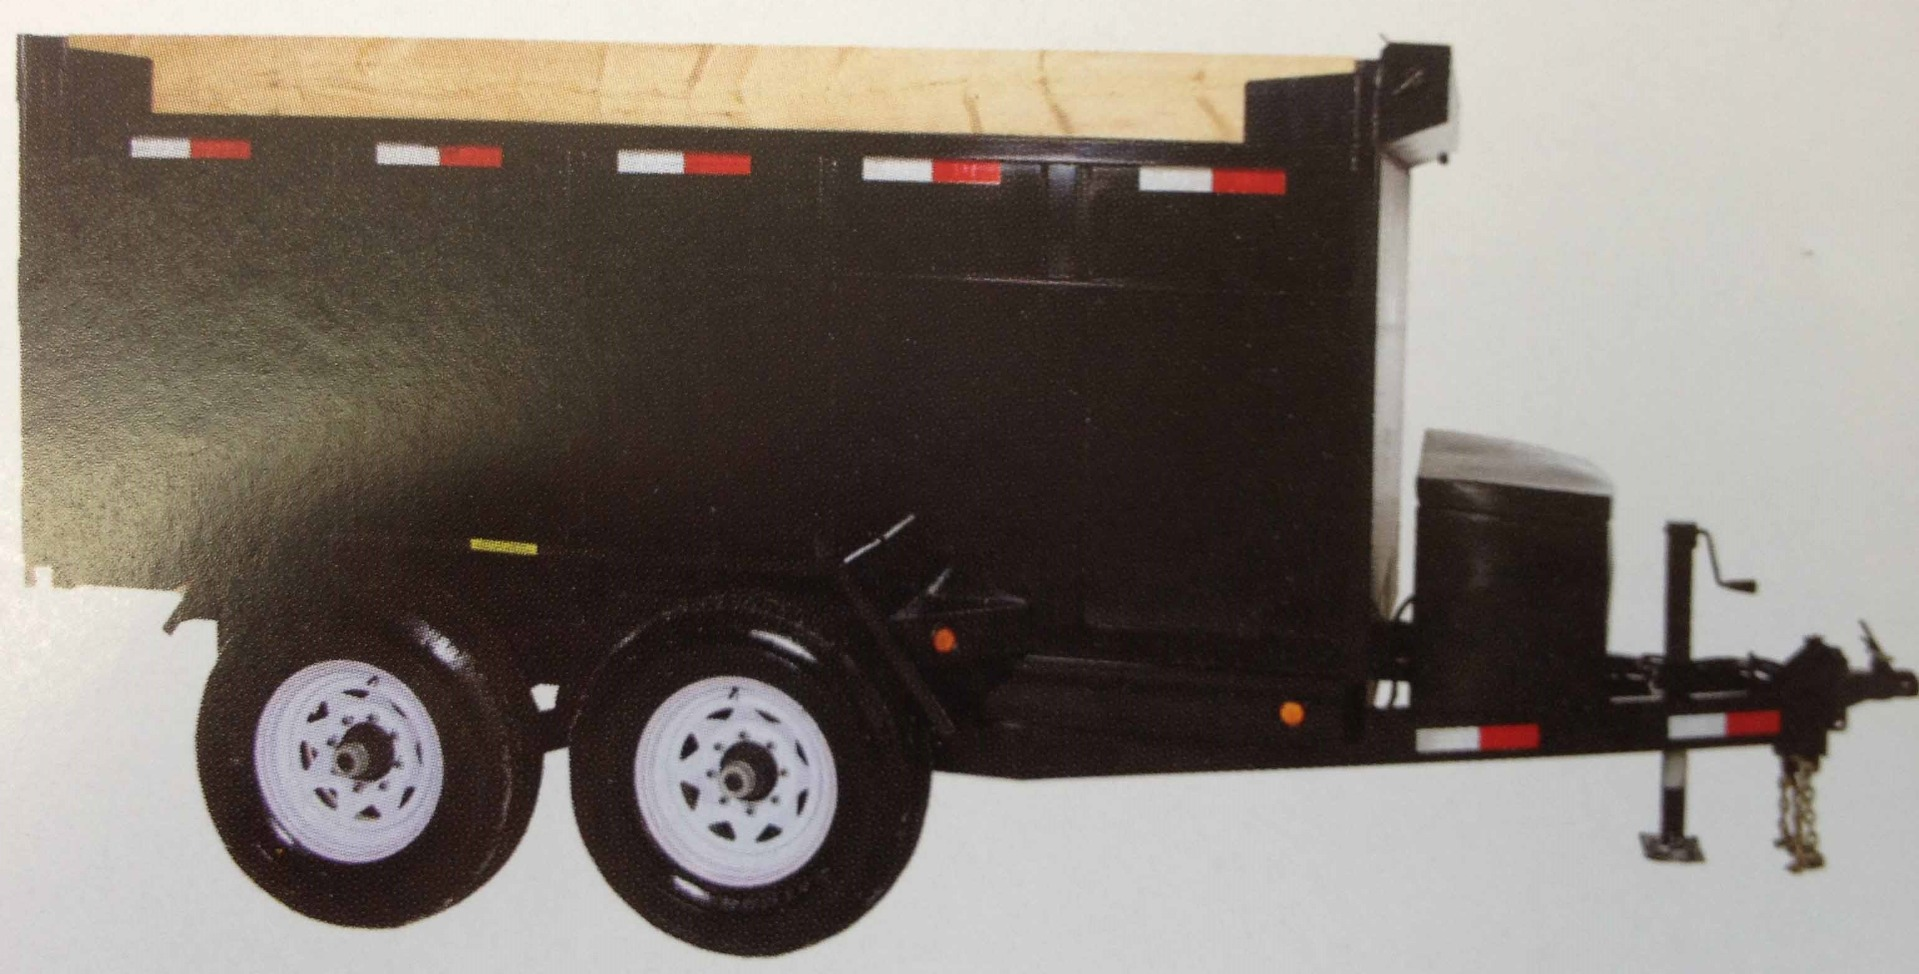 JDJ Heavy Duty Dump Tandem Trailer HDD 610 with 4' high sides (6' W x 10' L)